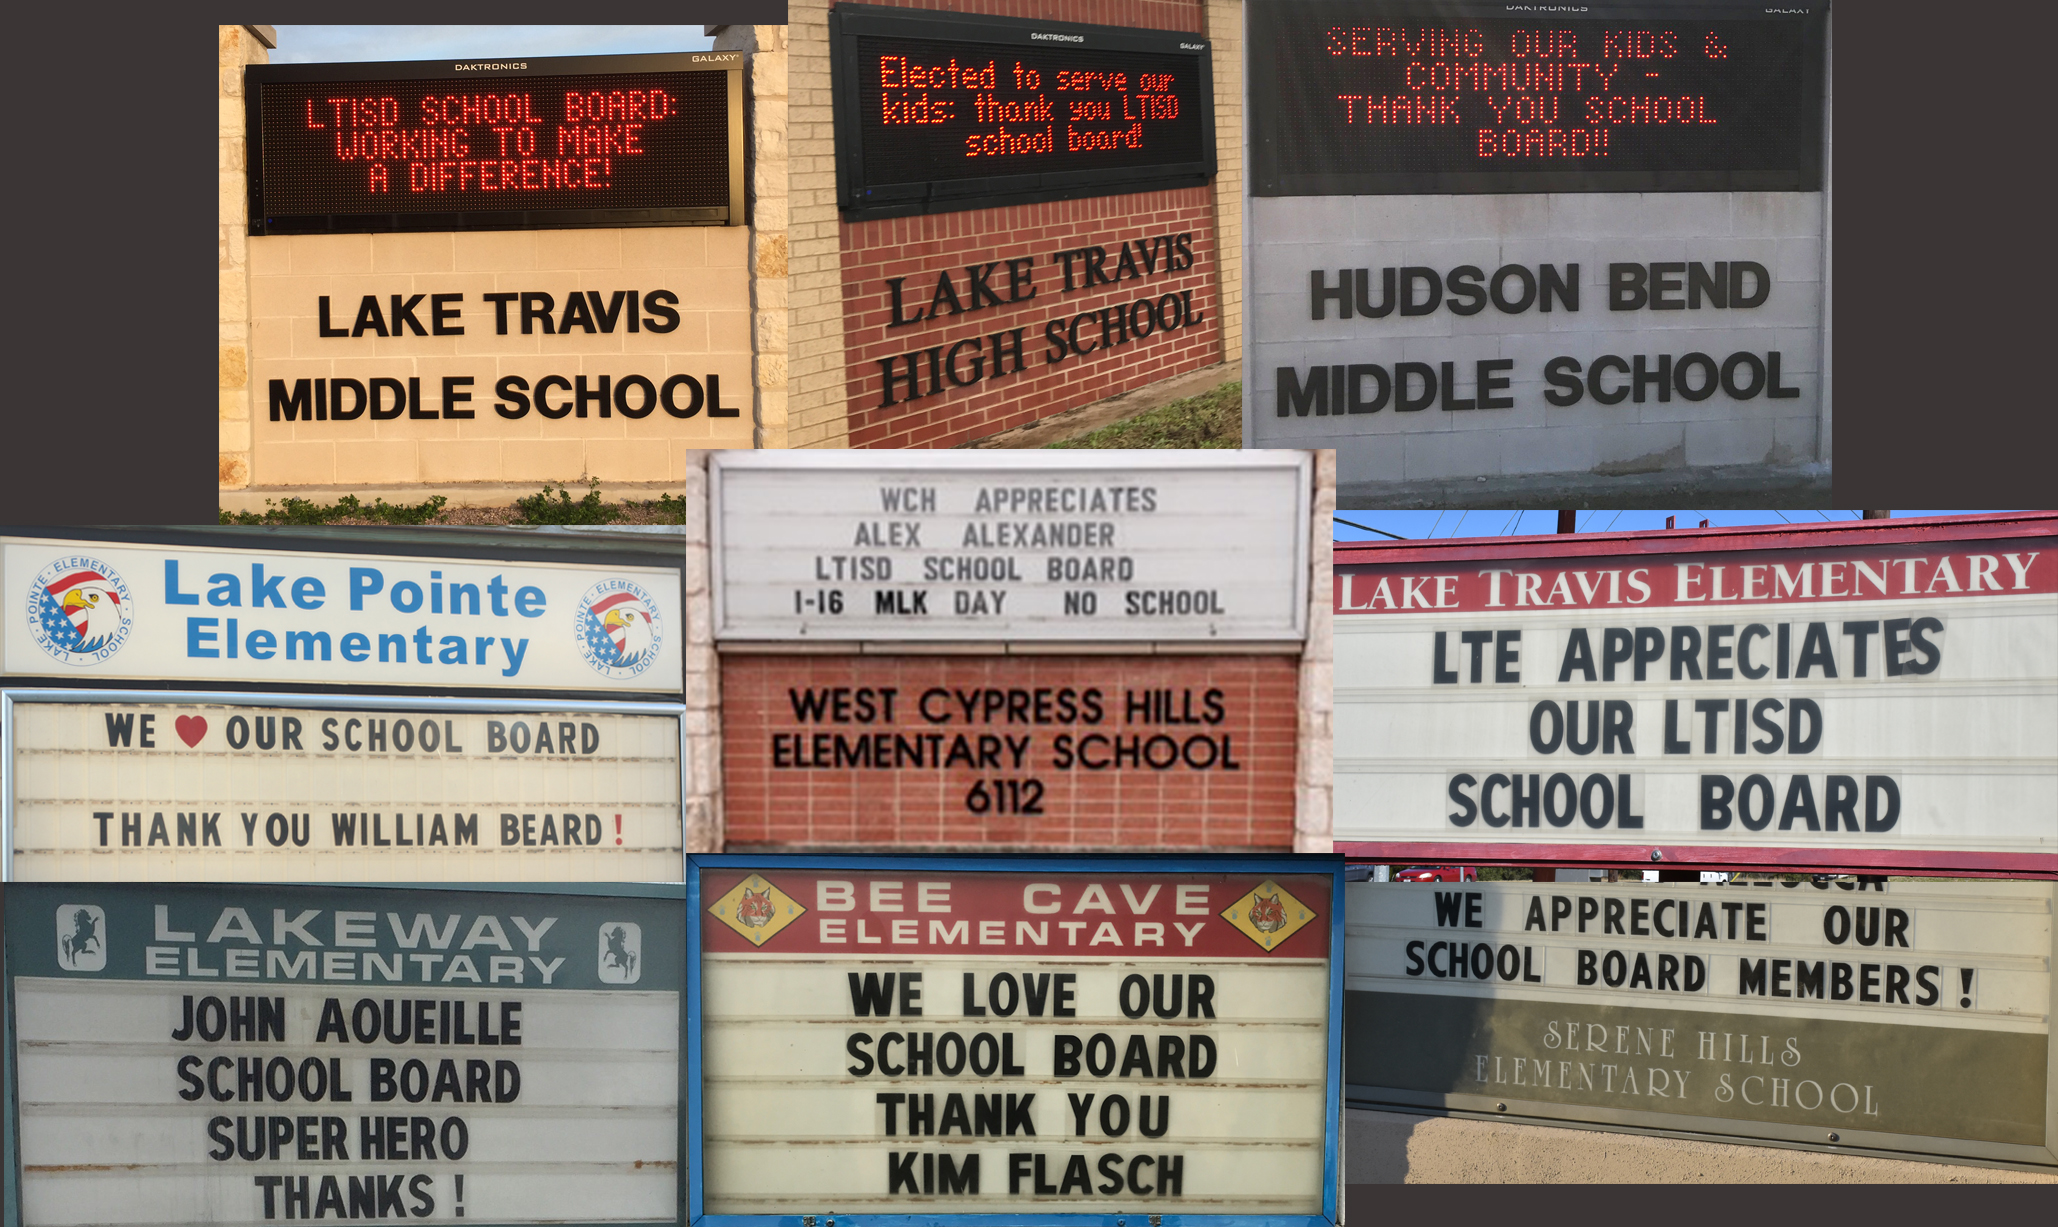 All LTISD schools displayed messages on their outdoor marquees thanking trustees for their service.